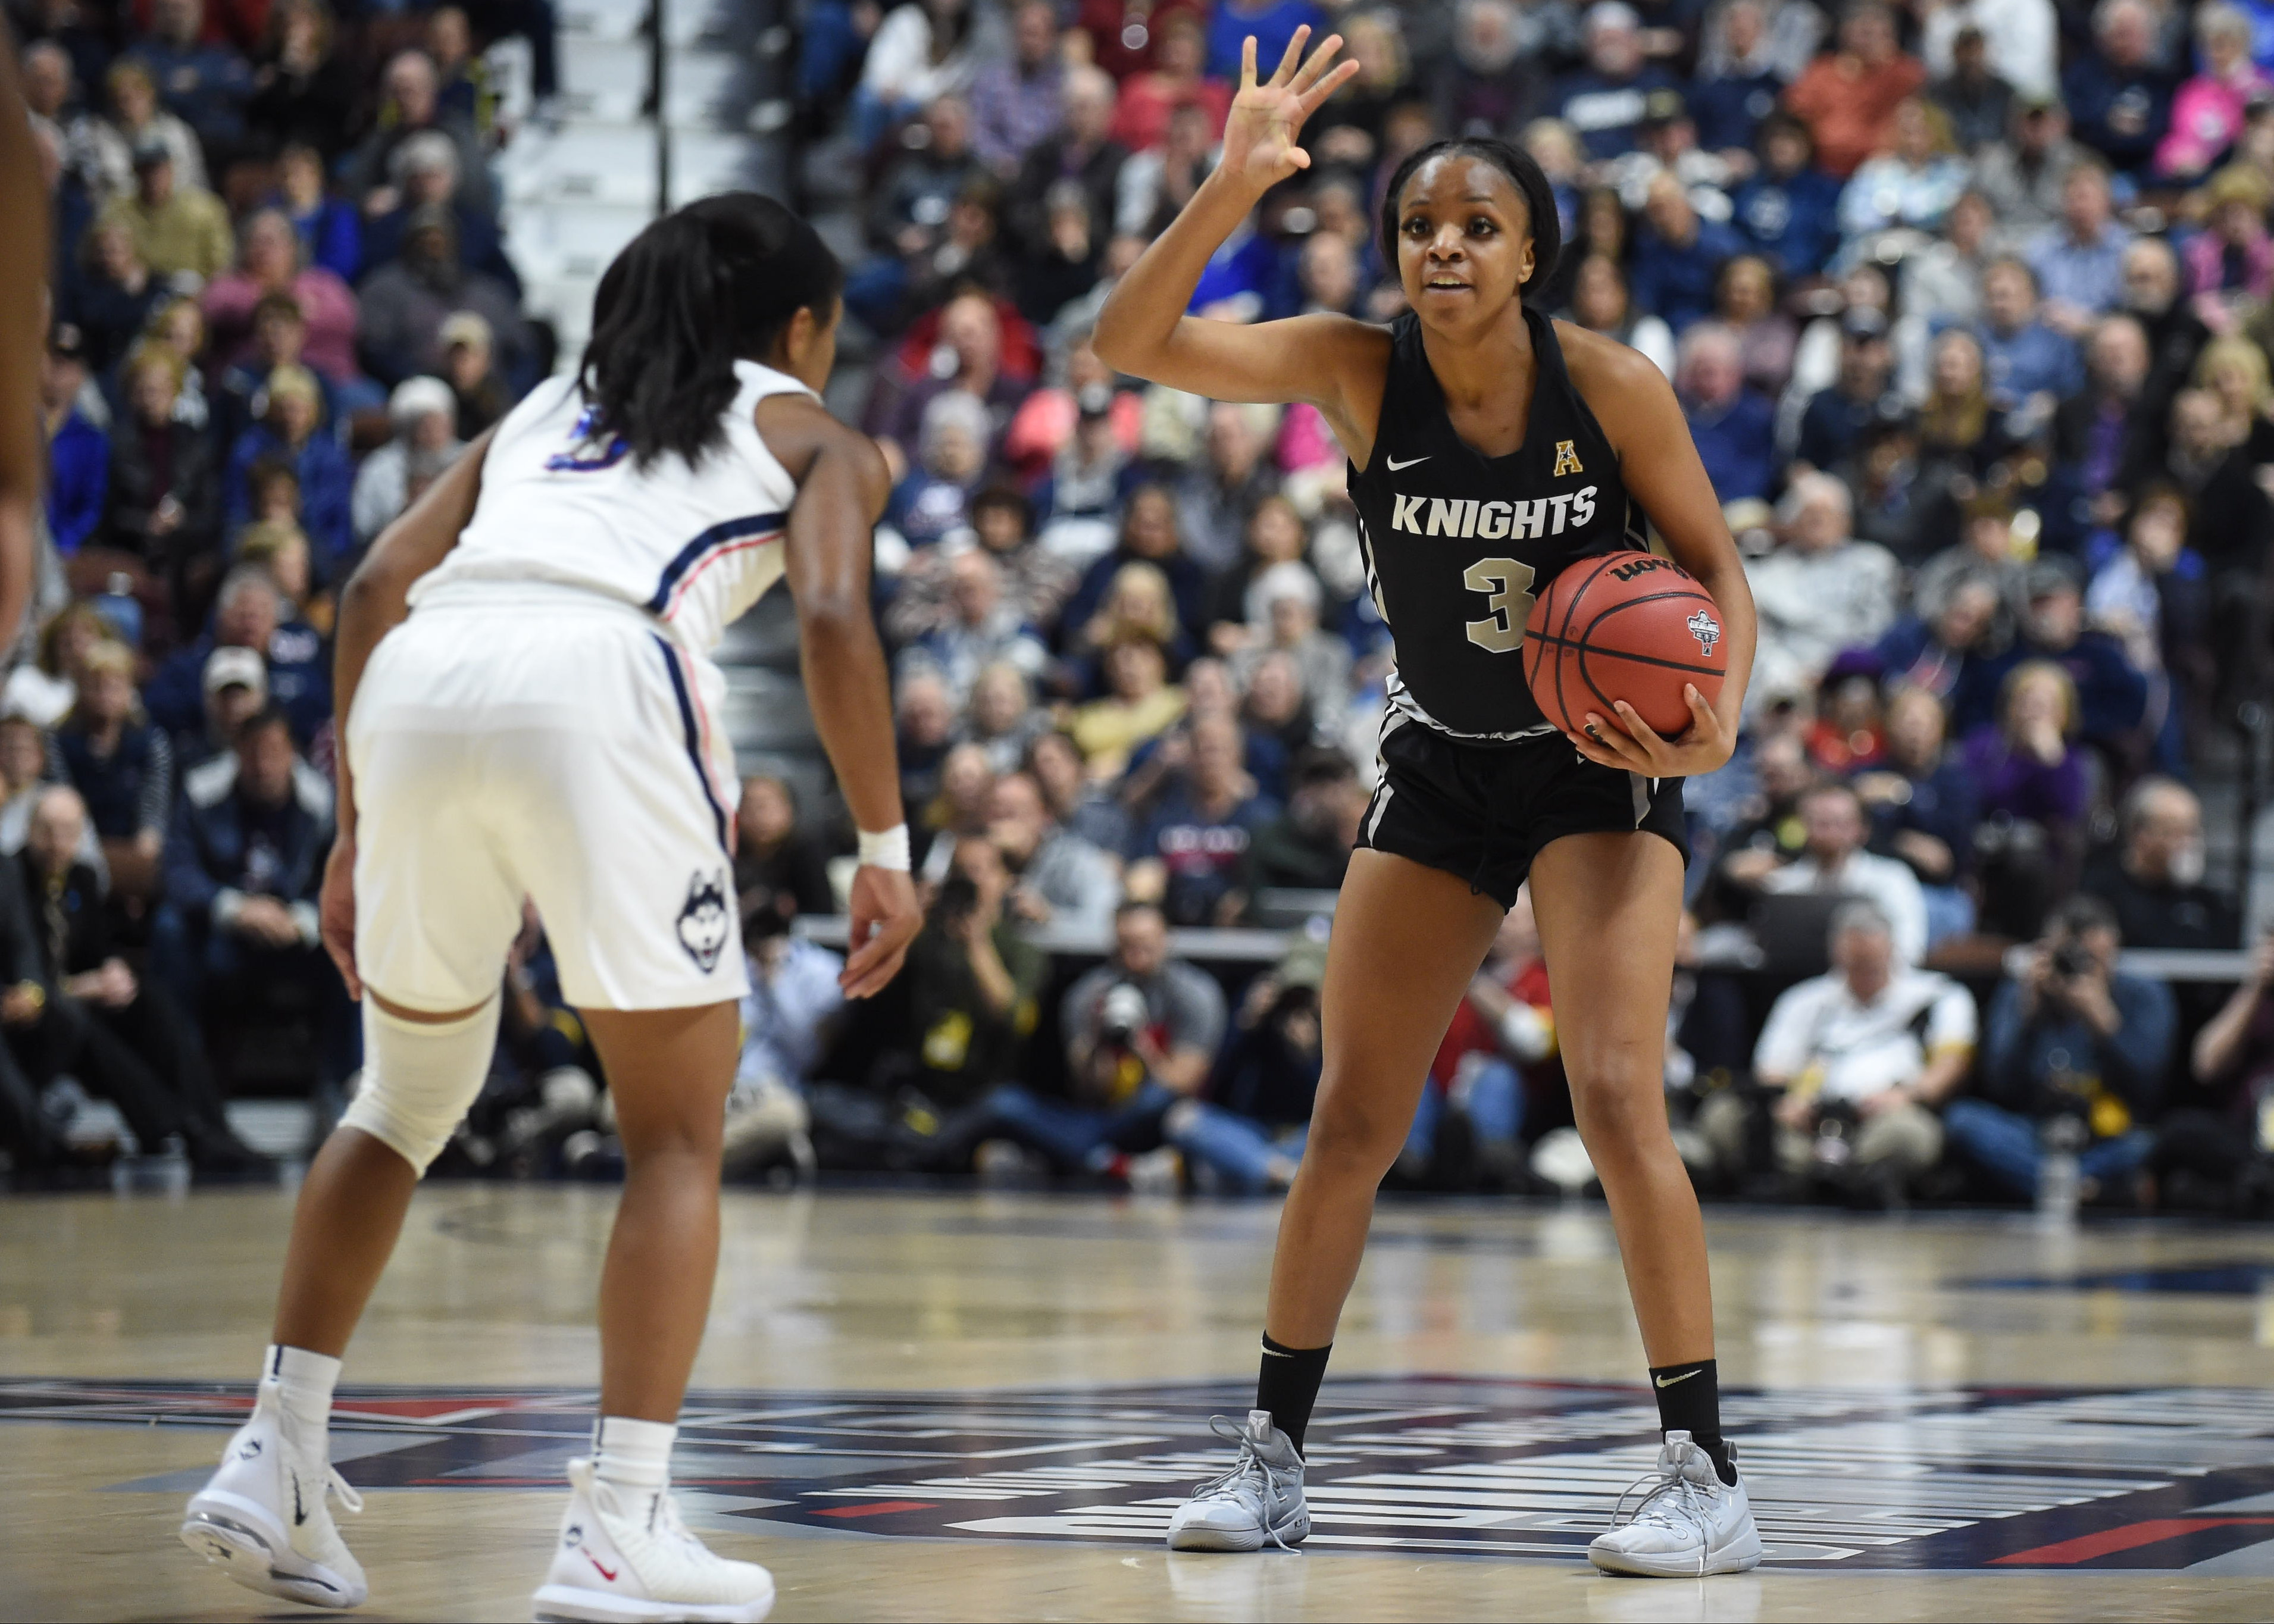 COLLEGE BASKETBALL: MAR 11 American Athletic Conference Women's Championship - UCF v UConn